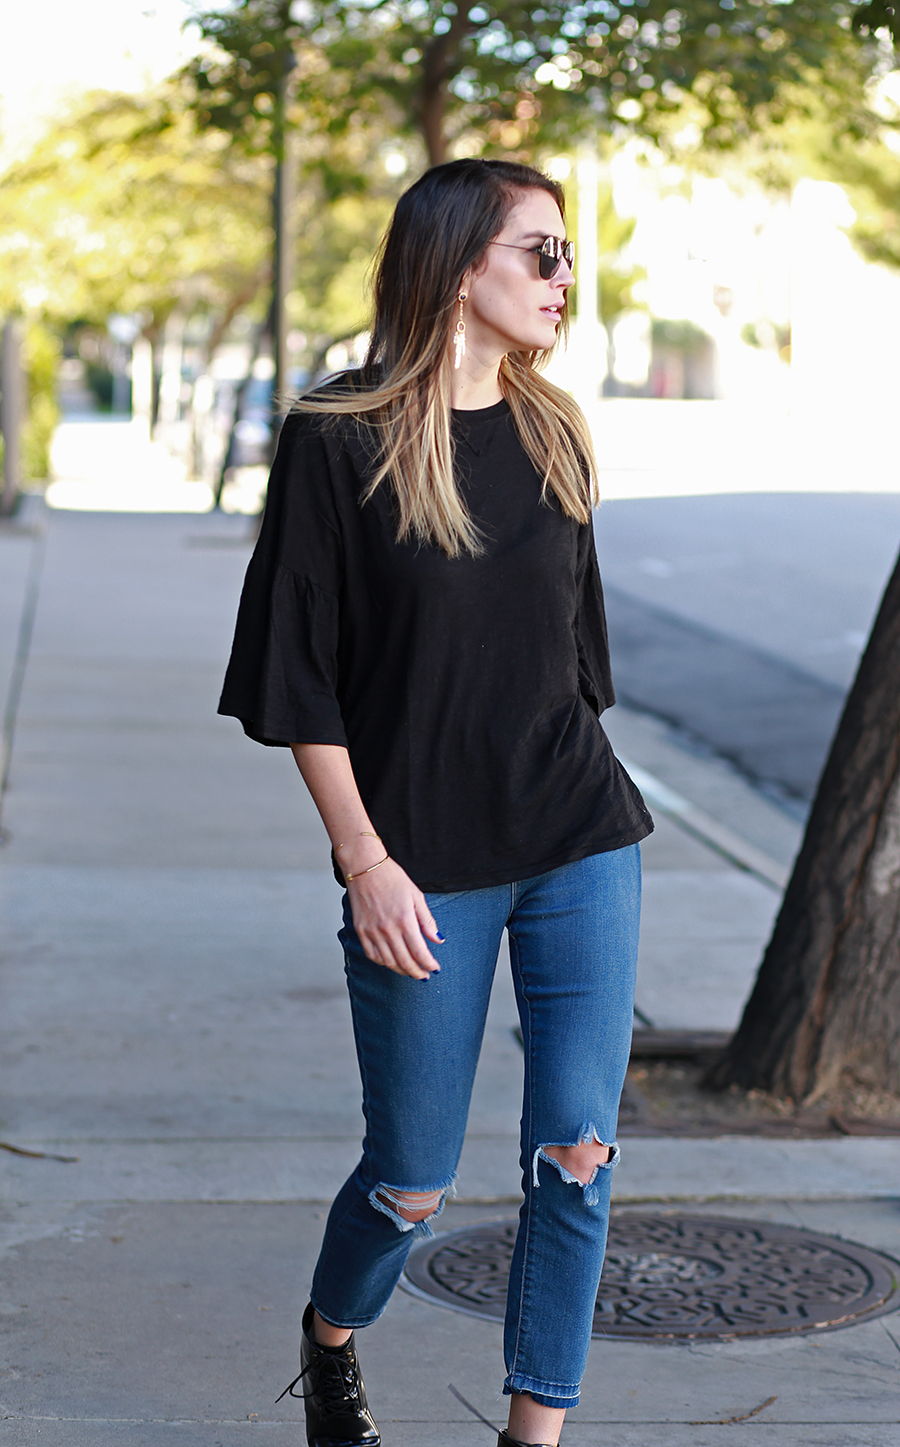 YESSTYLE top, Urban Outfitters jeans, Mango booties, Isharya earrings